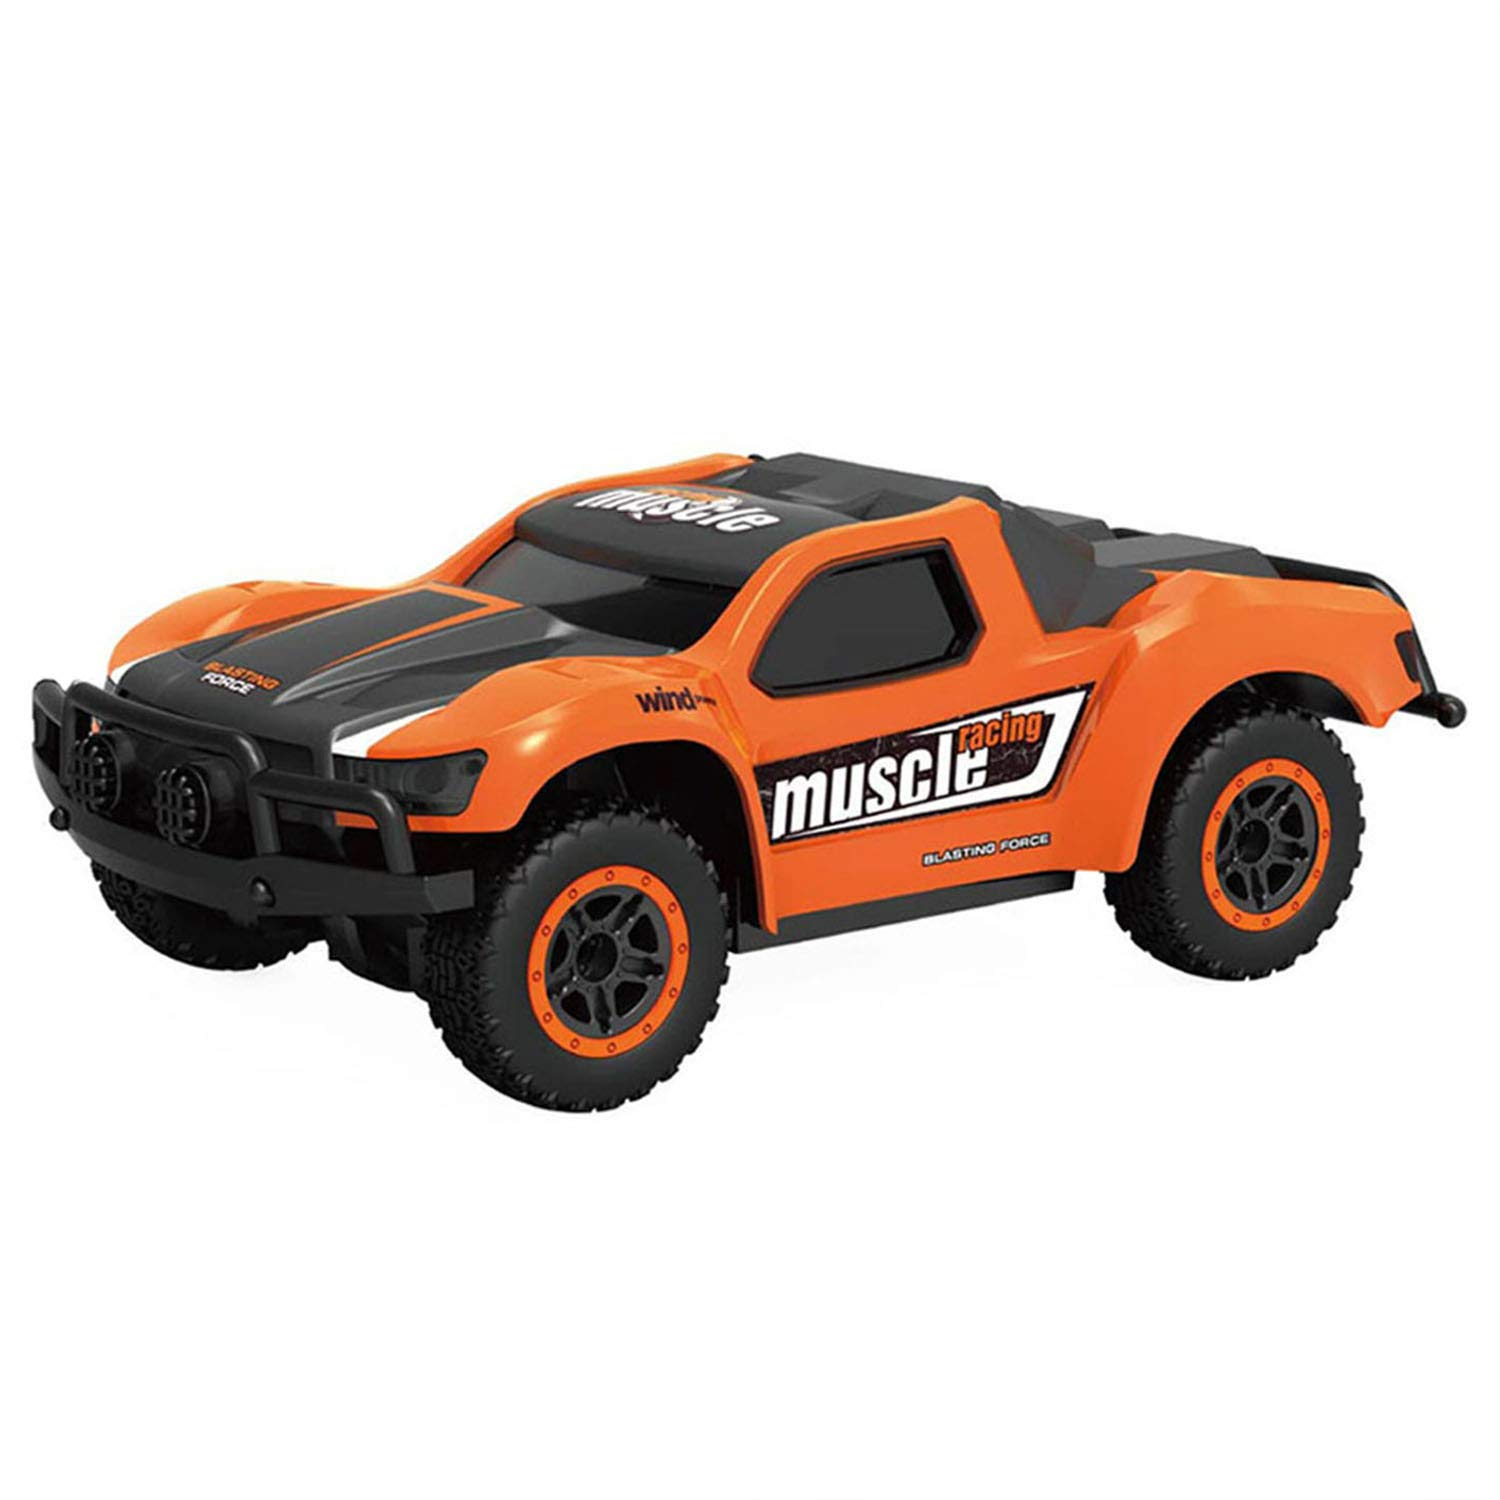 Chilartalent RC Cars Remote Control Car for Kids 5-12 Year Old, 1:43 Scale 4WD High Speed Racing Vehicles with 2.4GHz Radio Controller (Orange)